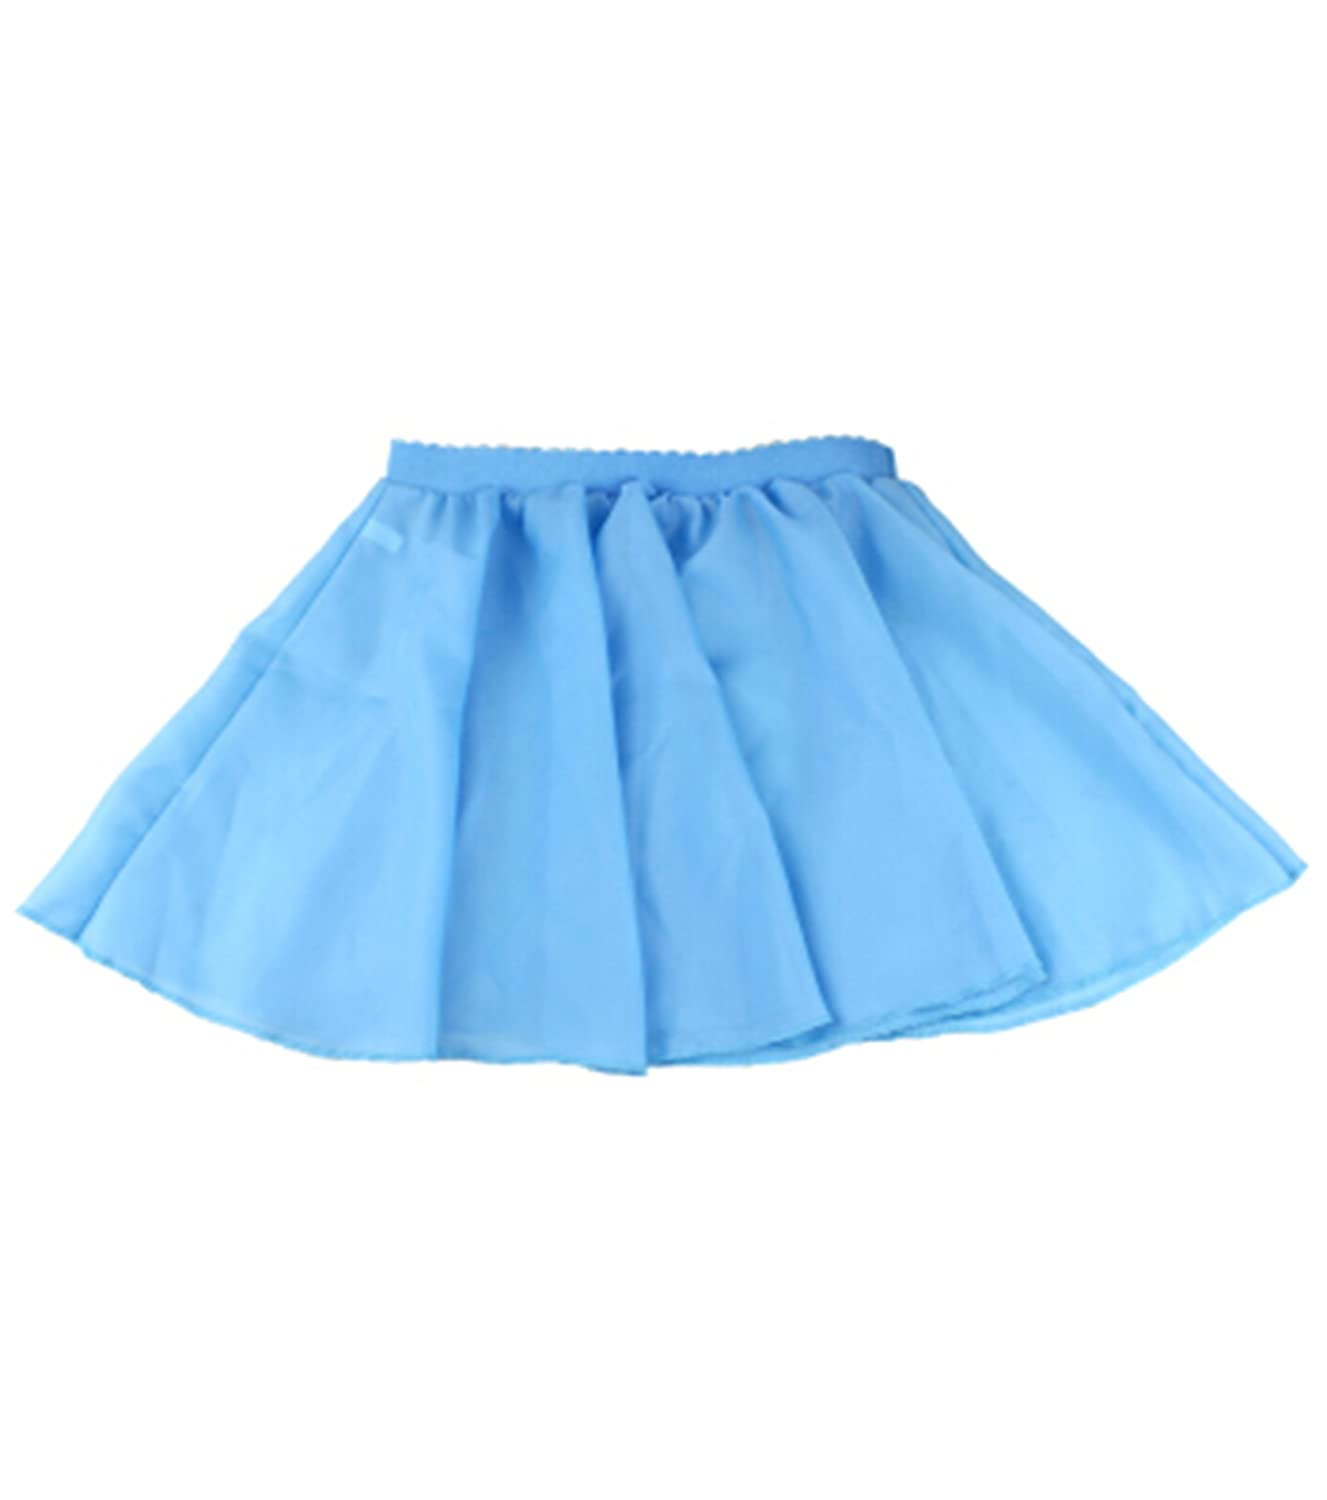 Astage Girl`s Ballet Dance Chiffon Skirts Fairy Tulle Adjustable Waistband 2pcs Astage C-BL-SJYBSQ